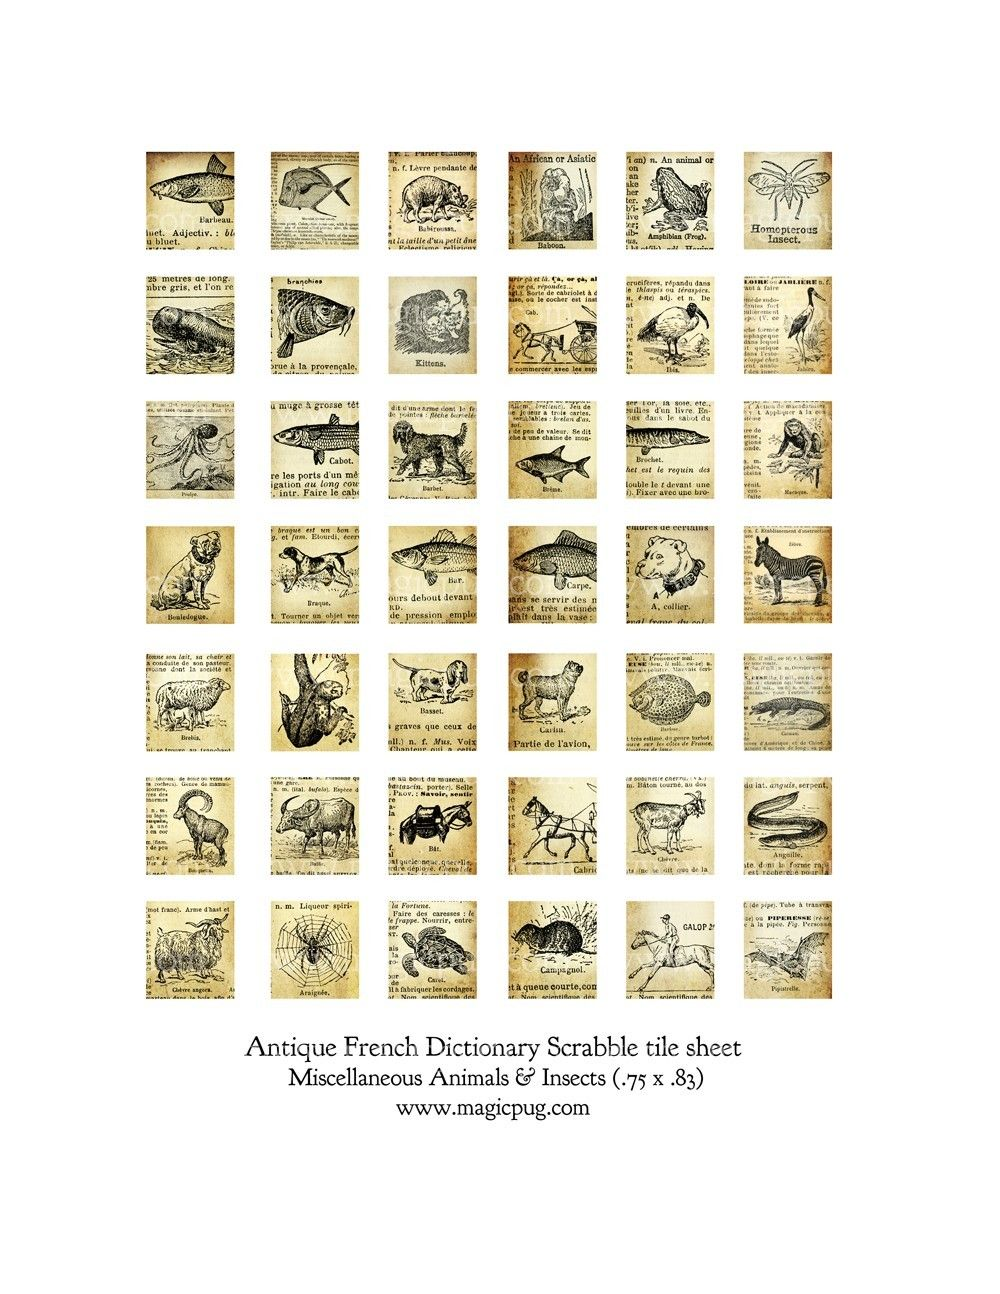 Antique French Animals And Insects Scrabble Digital Collage Sheet 75 X 83 Inch 19mm X 21mm Line Drawings Digital Collage Sheets Artist Supplies Collage Sheet